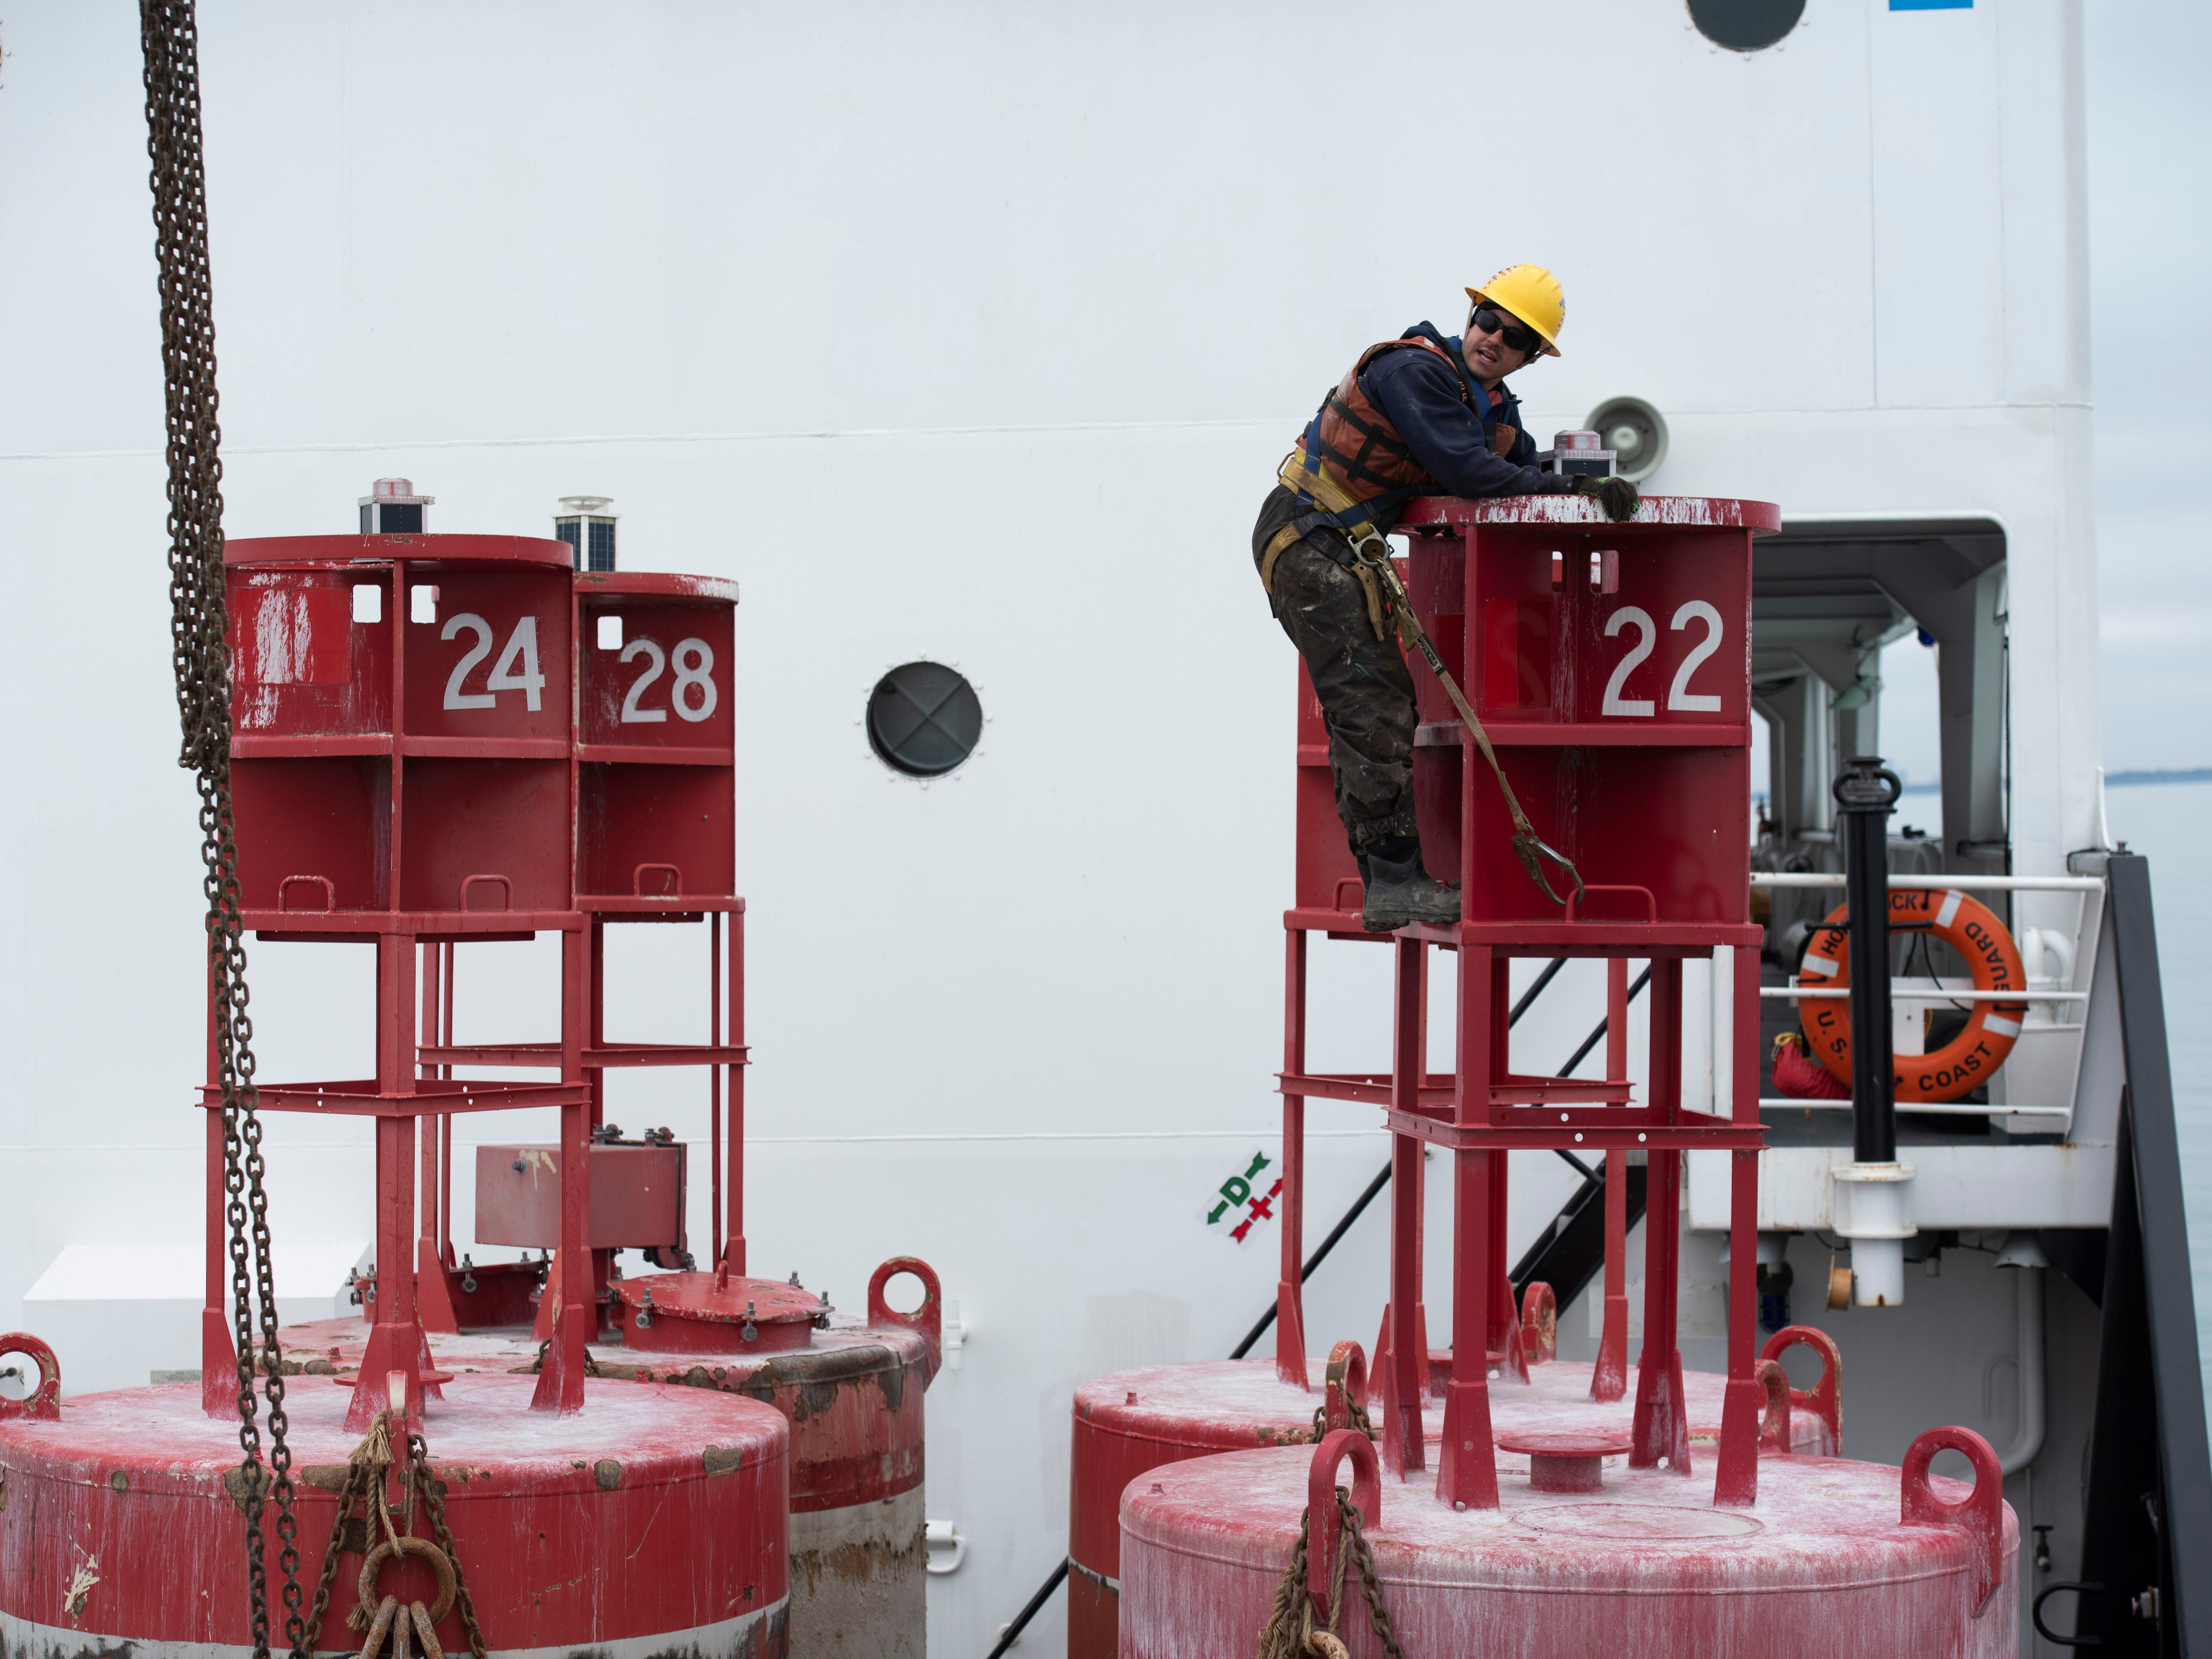 U.S. Coast Guard BM2 Nicholas Cavallarro climbs to the top of a buoy to inspect its light before it is set back into Lake St. Clair Thursday, April 25, 2019.